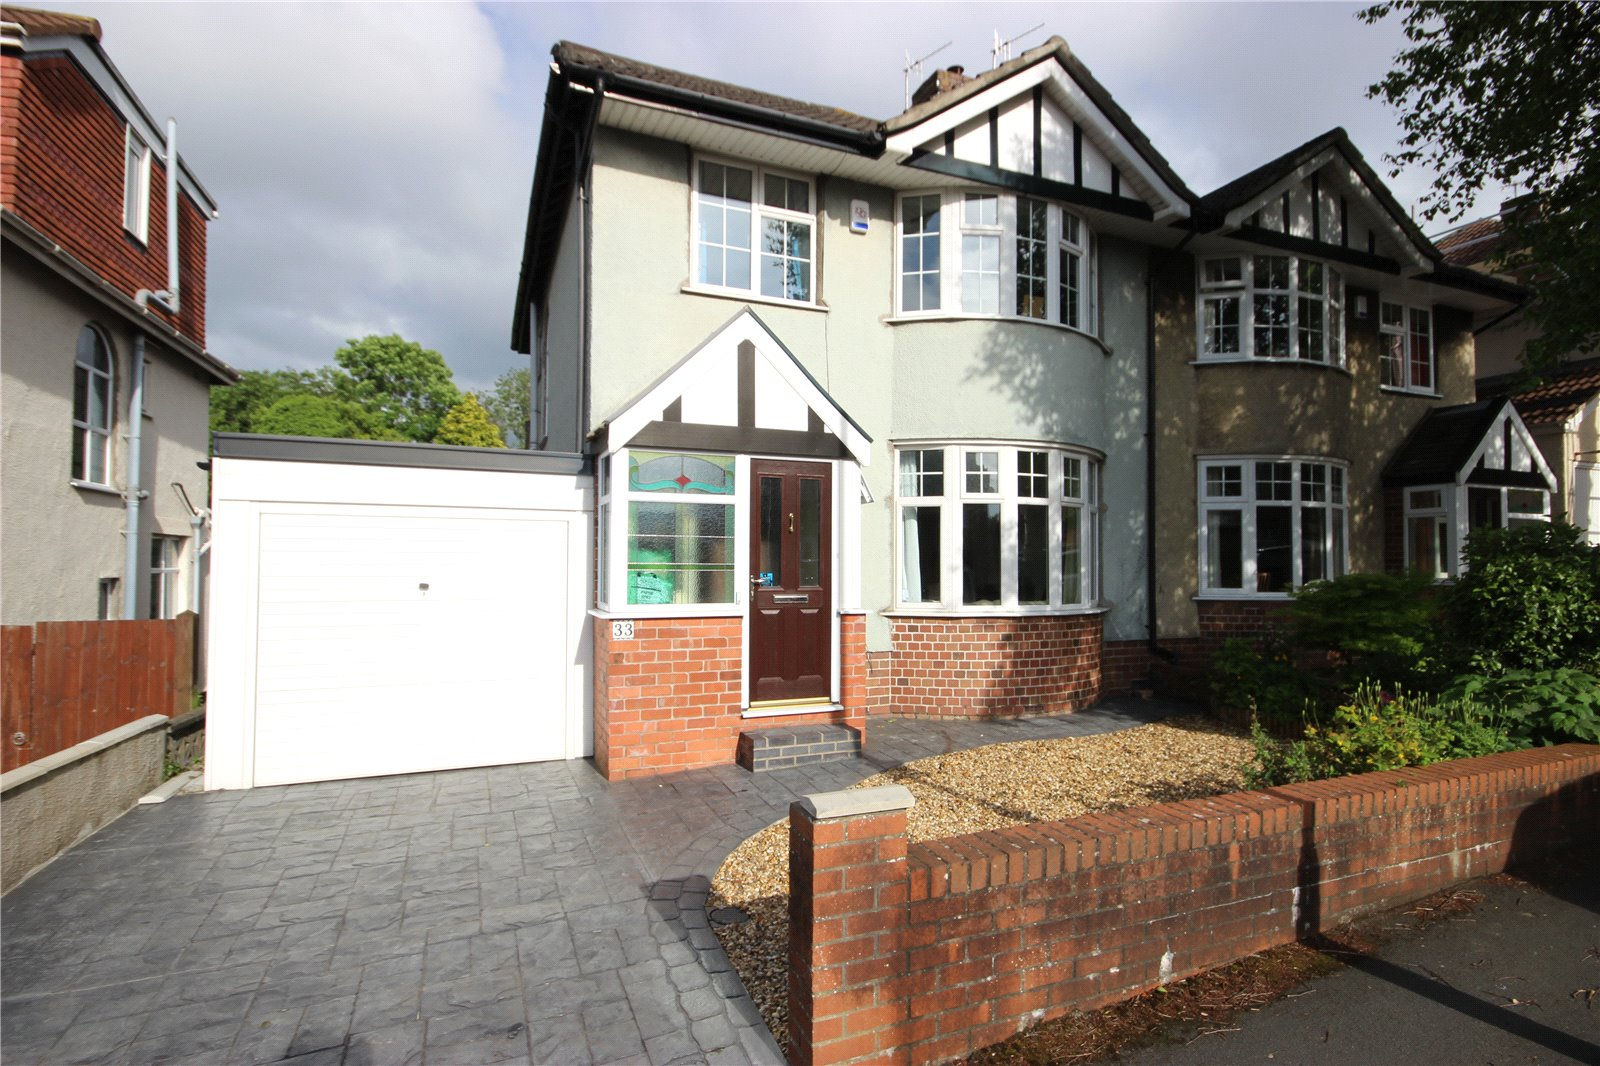 3 Bedrooms Semi Detached House for sale in Kenmore Crescent Filton Park Bristol BS7